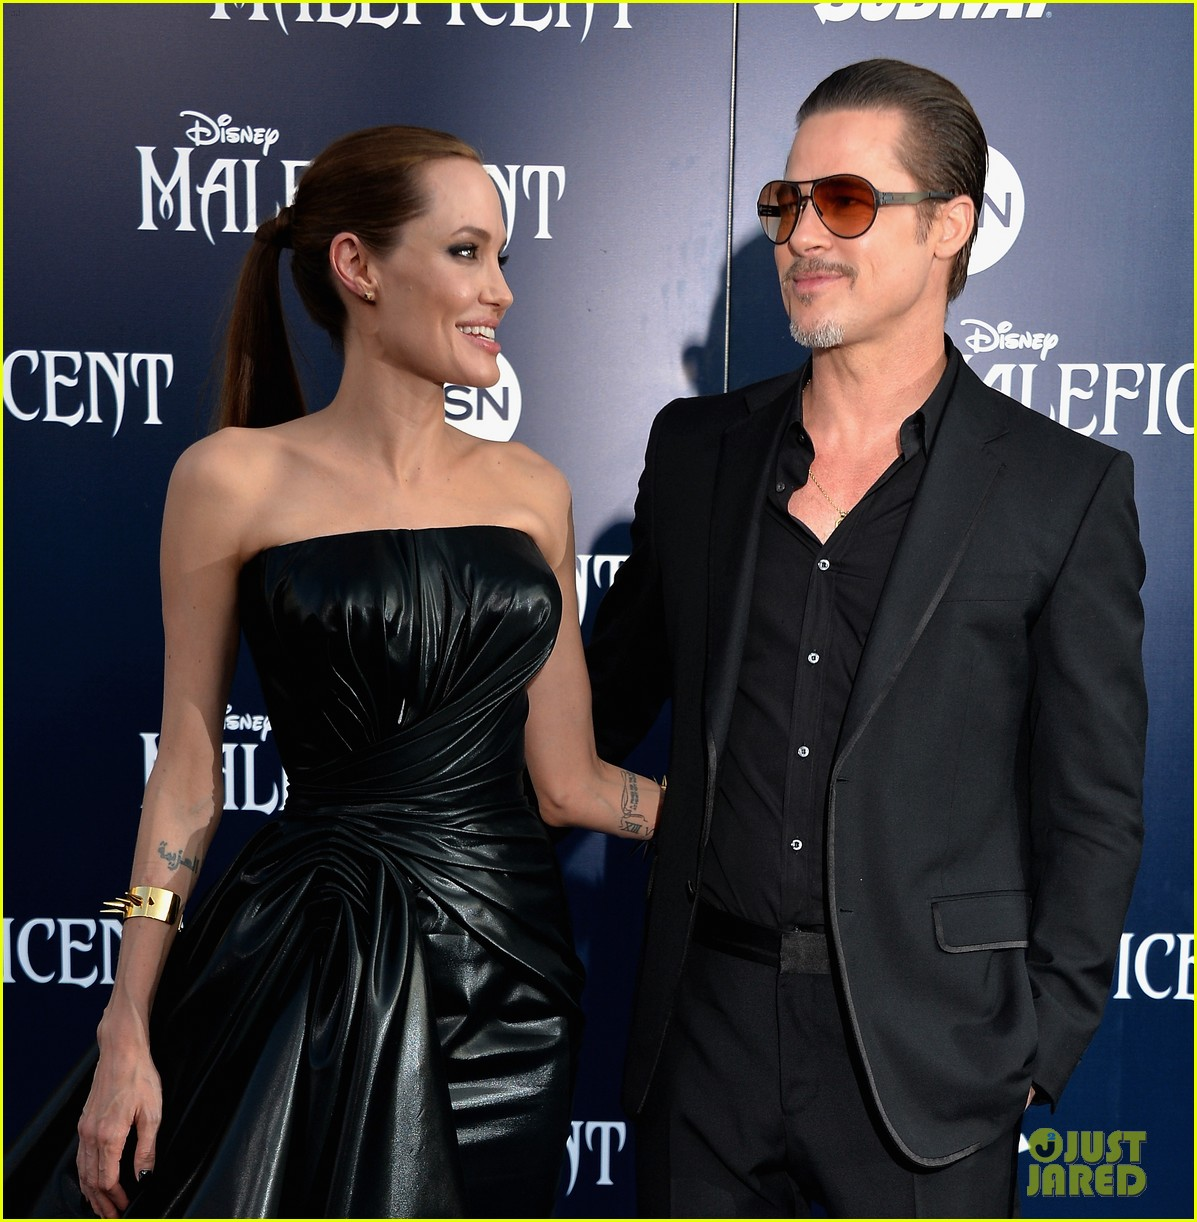 maddox jolie pitt looks so dapper in his suit at maleficent premiere 193123922